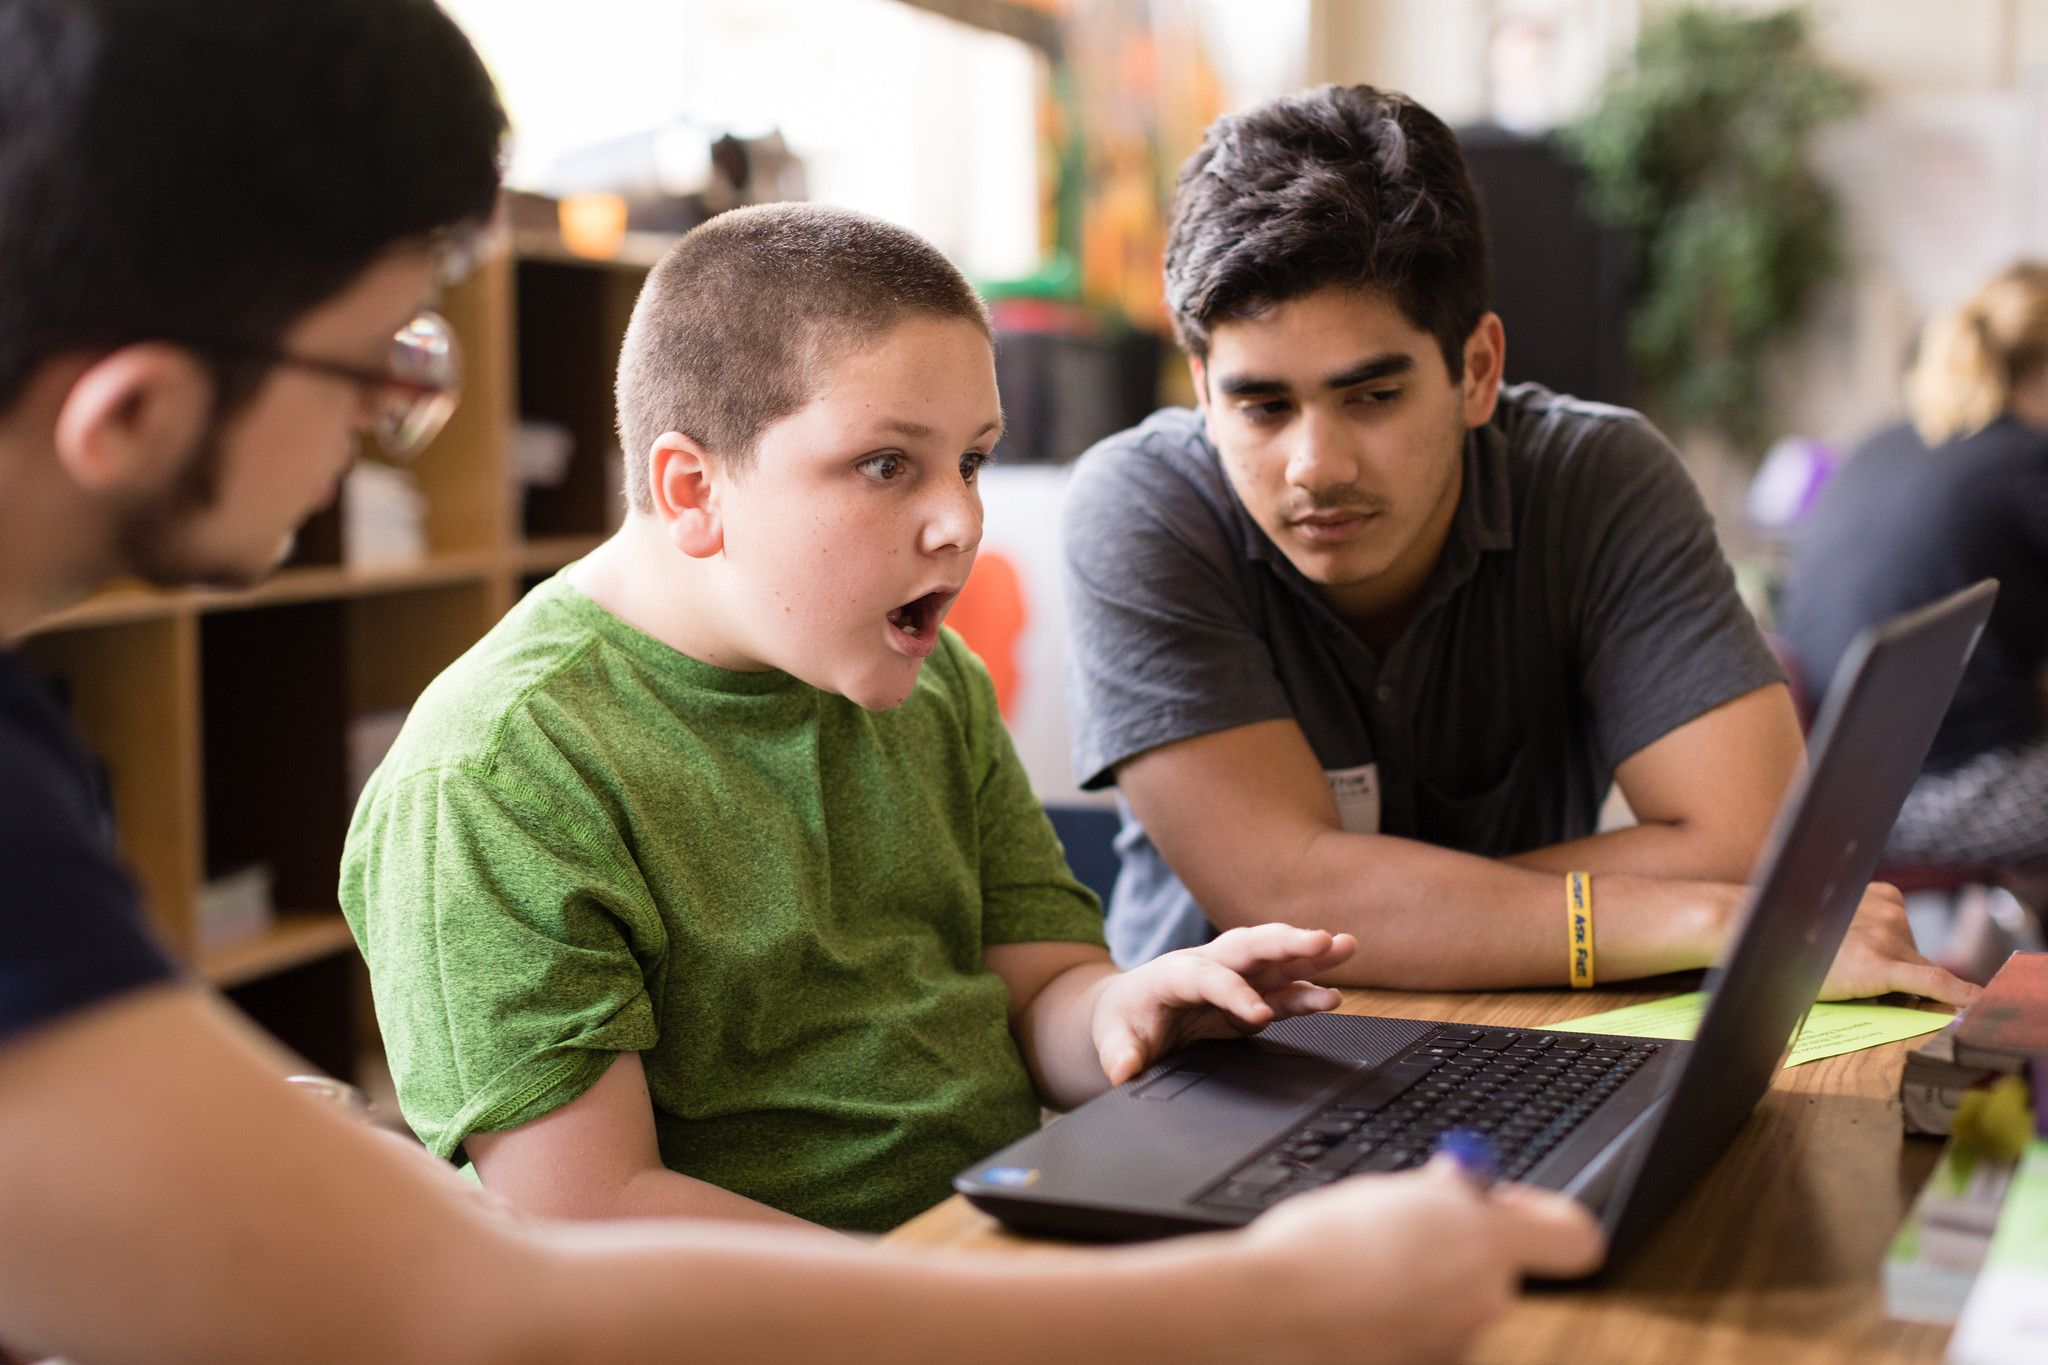 A student gets excited when he learns from Rollins students how to code a video game.